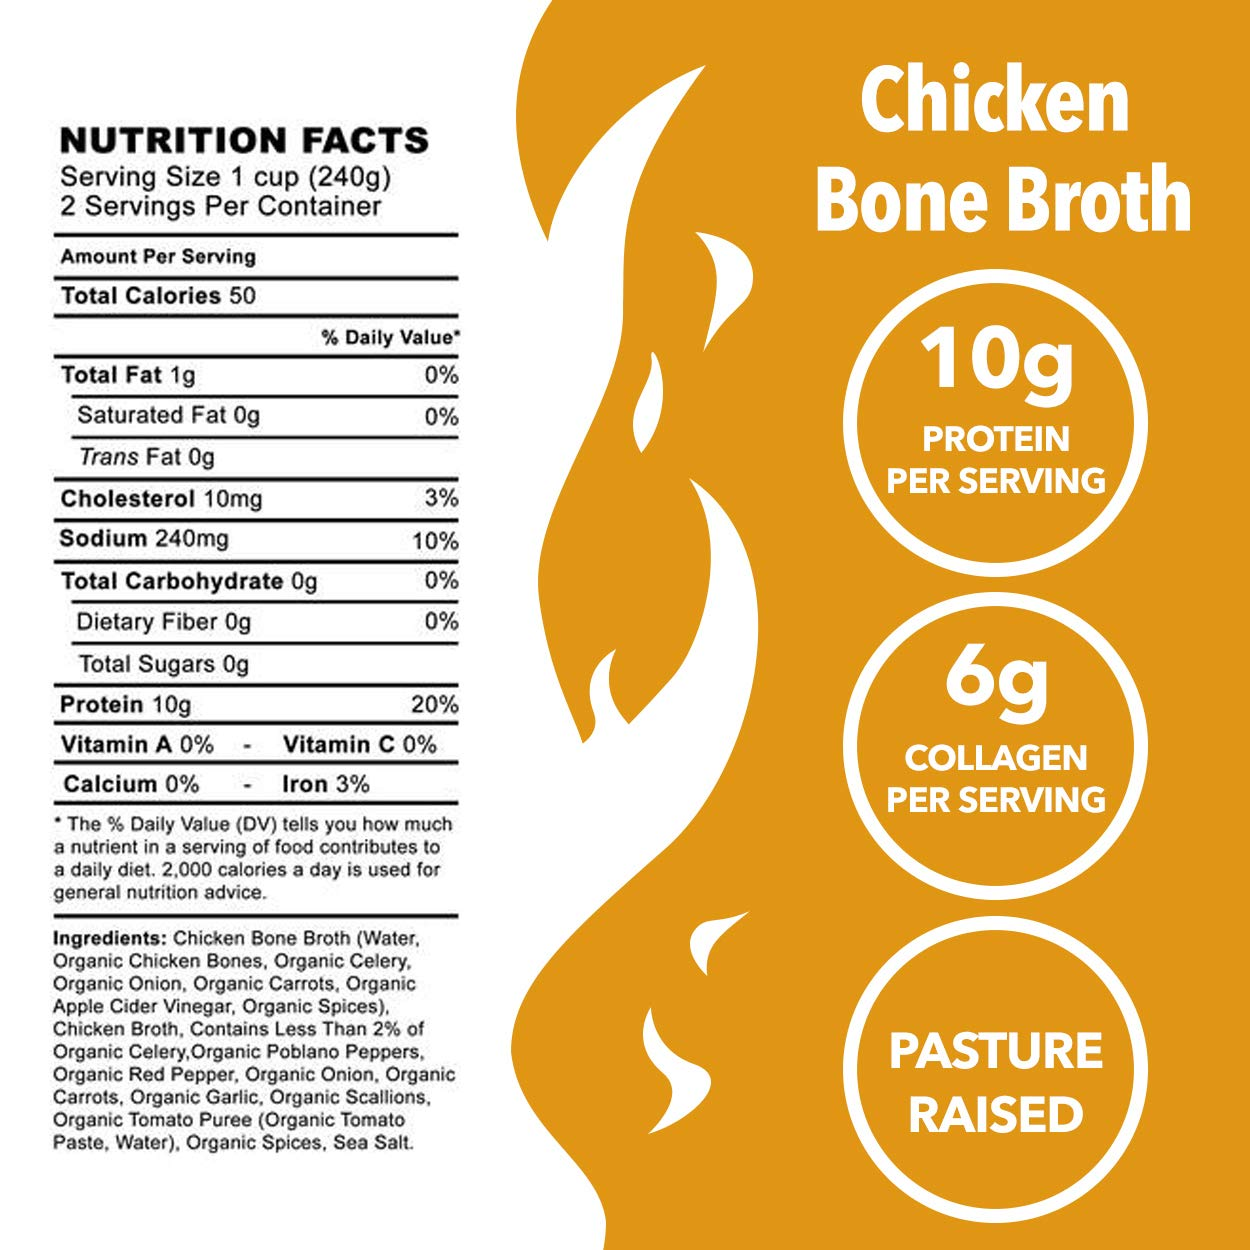 Chicken Bone Broth Soup by Kettle and Fire, Pack of 4, Keto Diet, Paleo Friendly, Whole 30 Approved, Gluten Free, with Collagen, 10g of protein, 16.2 fl oz by Kettle & Fire (Image #3)